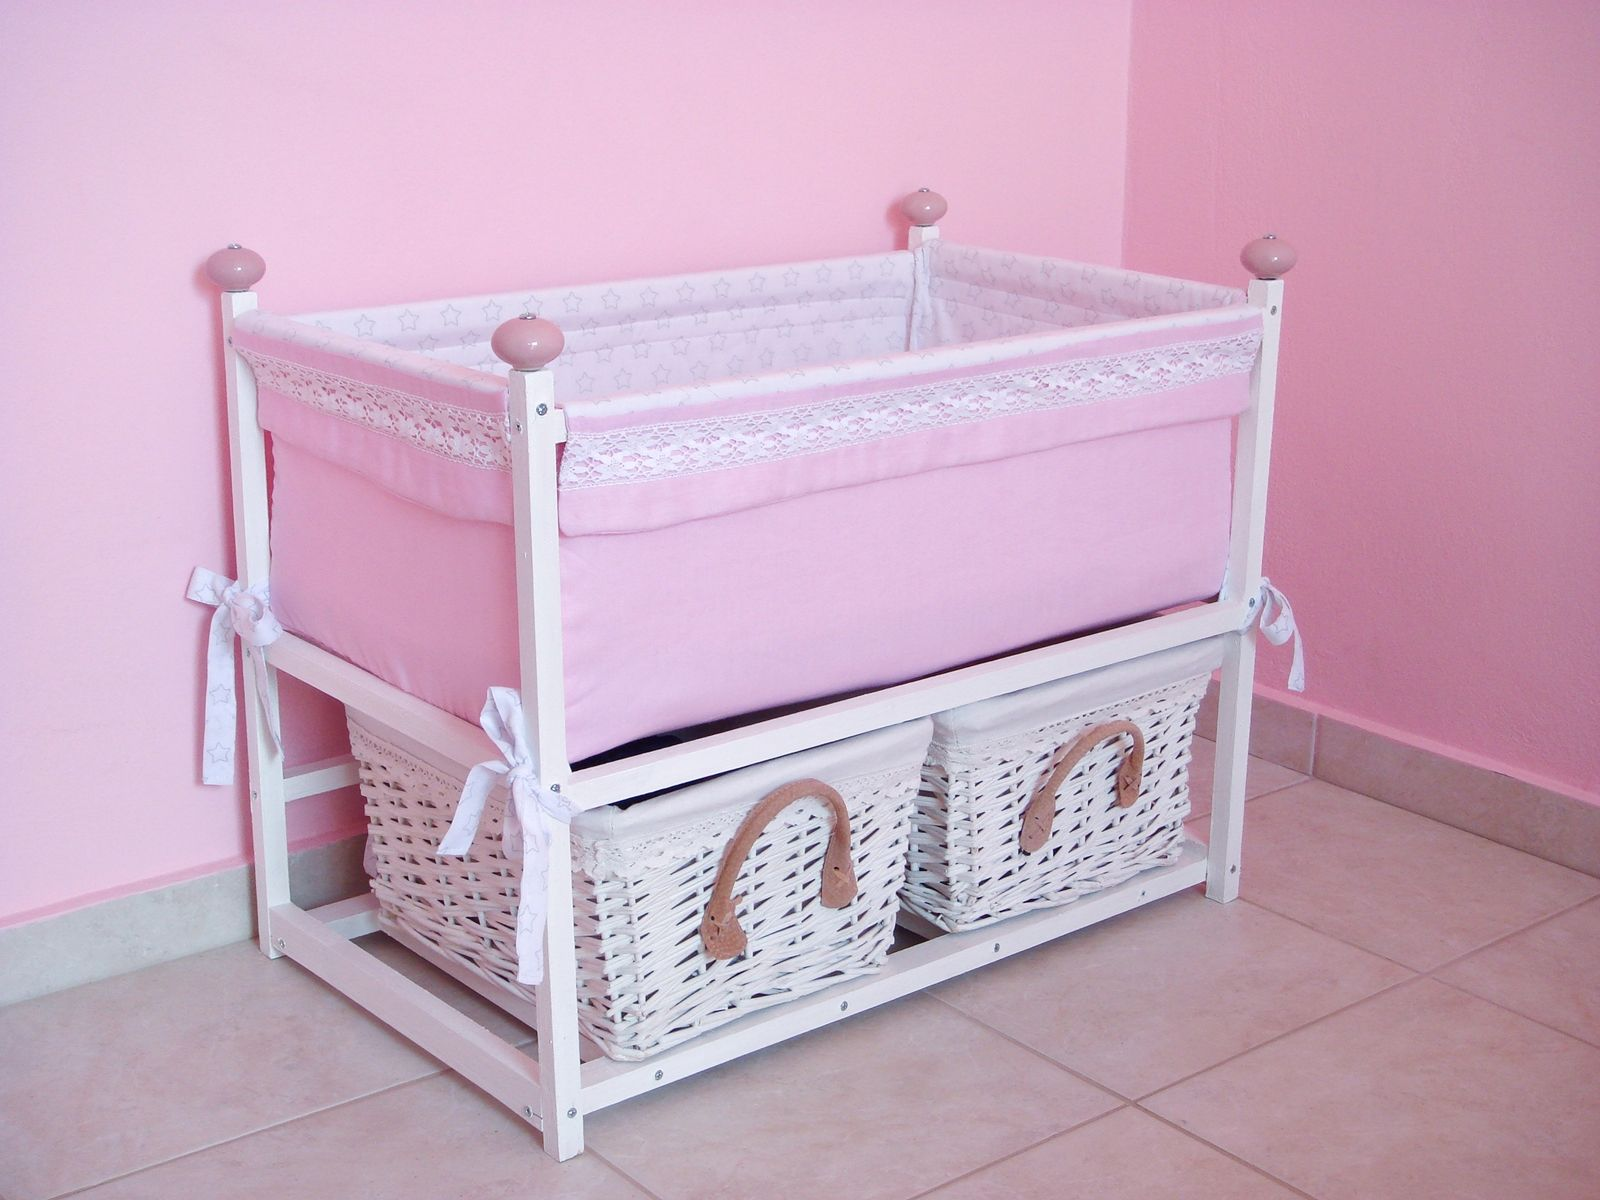 Diy Doll Basinet Crib Bed Size Of The Bed 60 Cm L